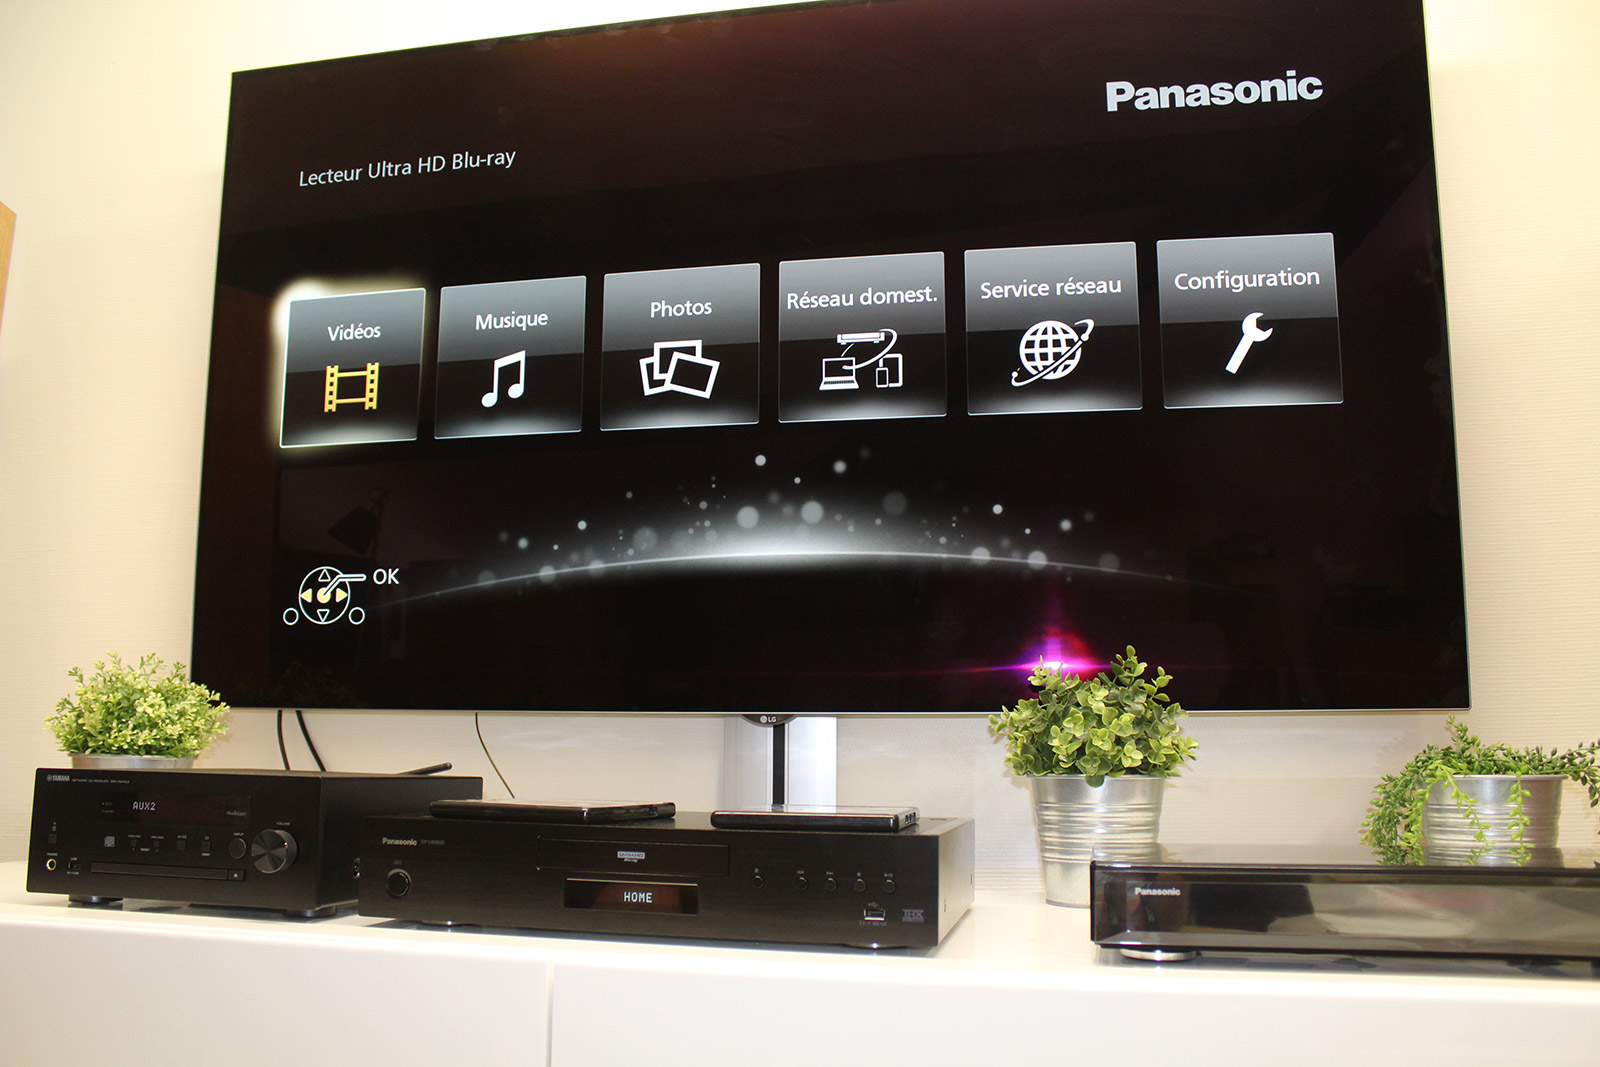 Review: Panasonic DP-UB9000: 4K HDR10+/Dolby Vision Blu-ray